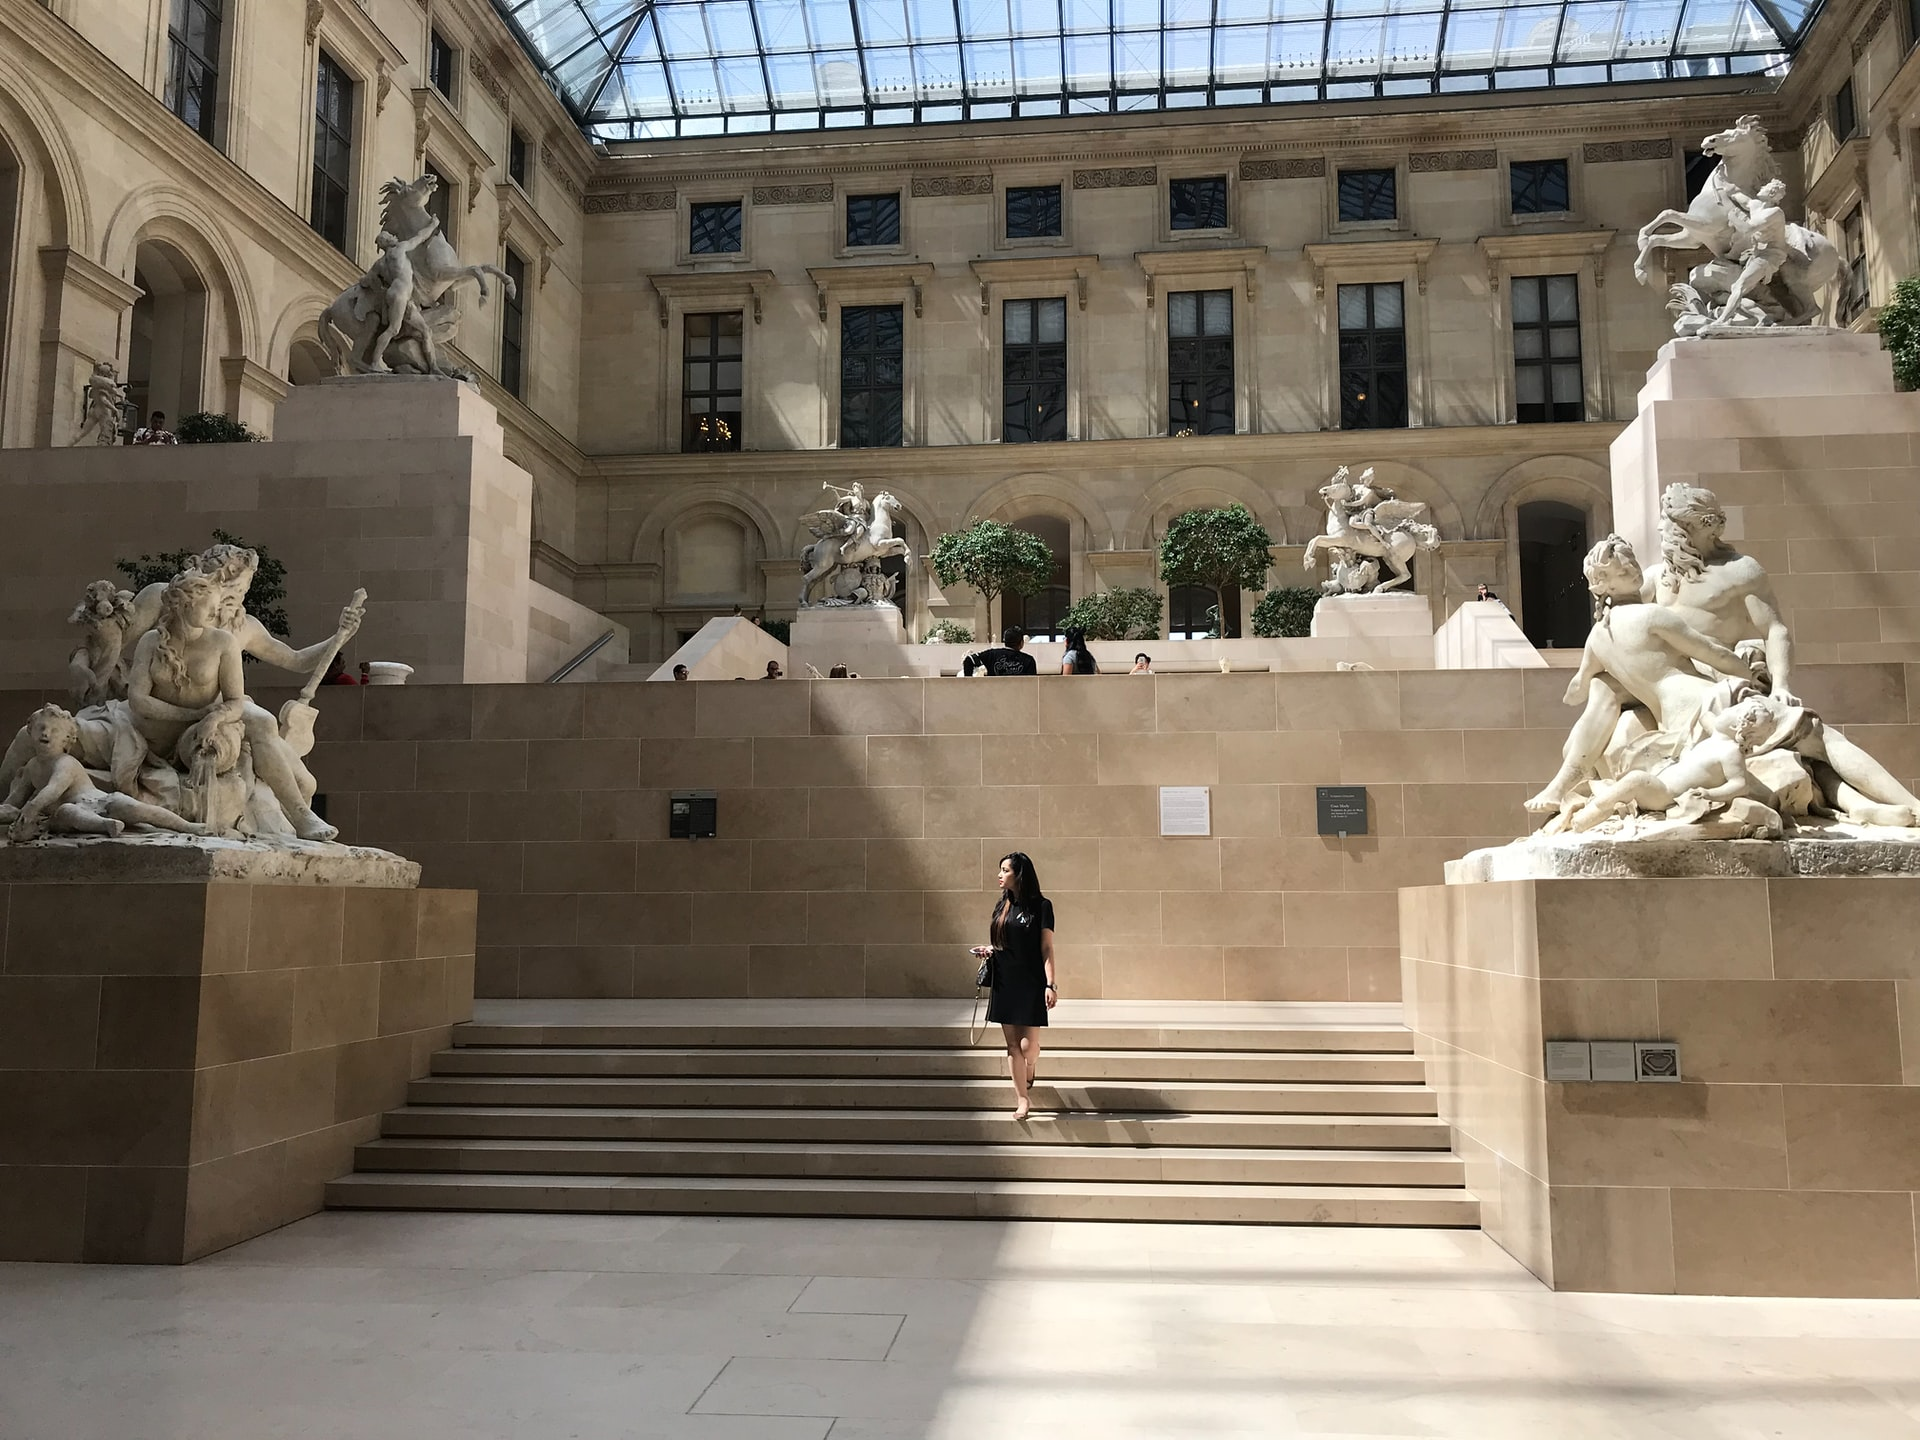 Louvre floors of art with sculptures and steps